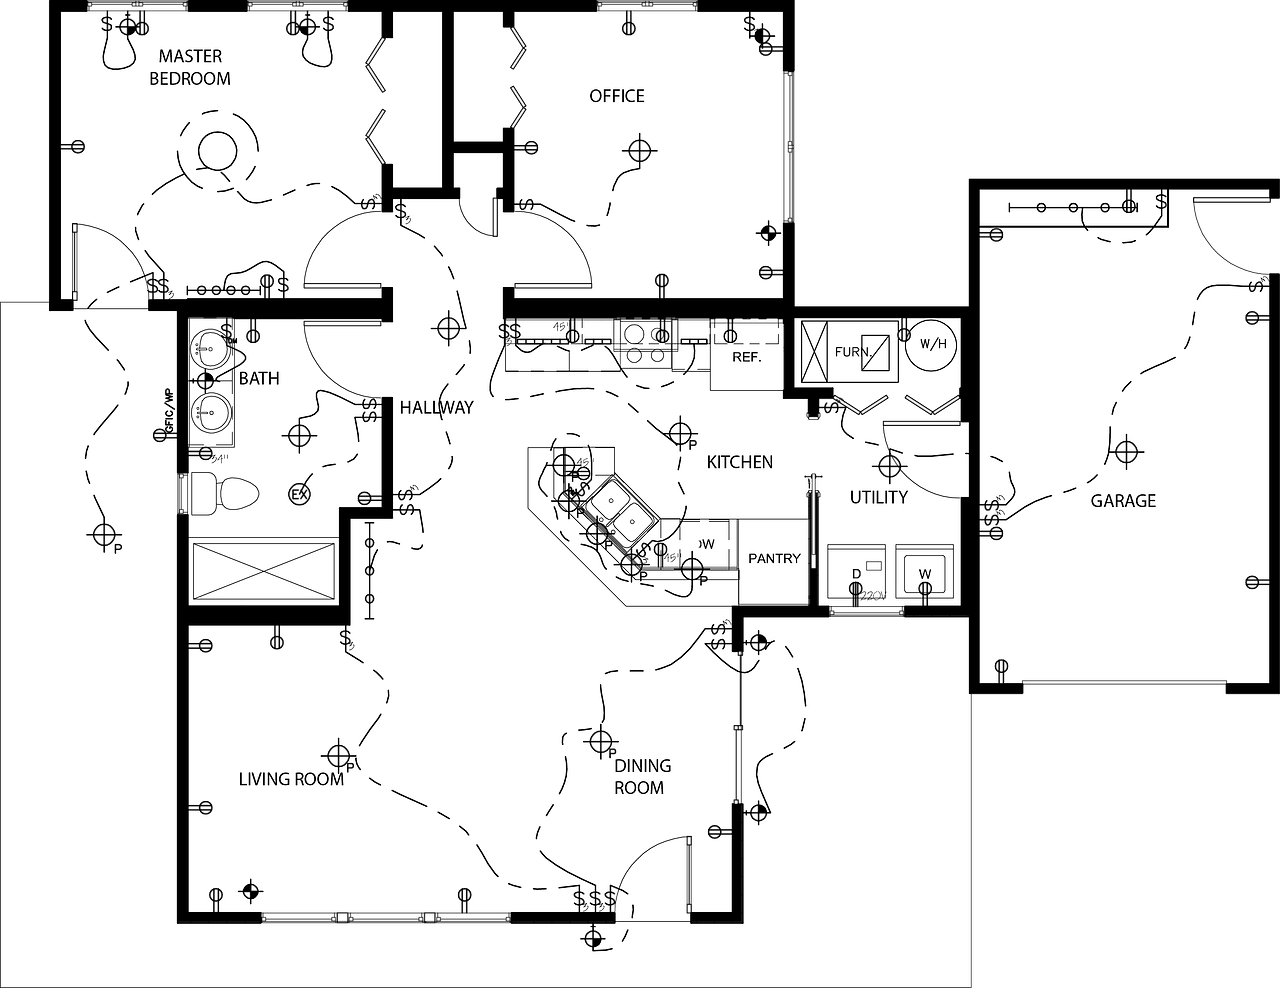 electrical plan residential electrical plan for residential house wix.com id created by laurensypulski based on art-shop-2 ...